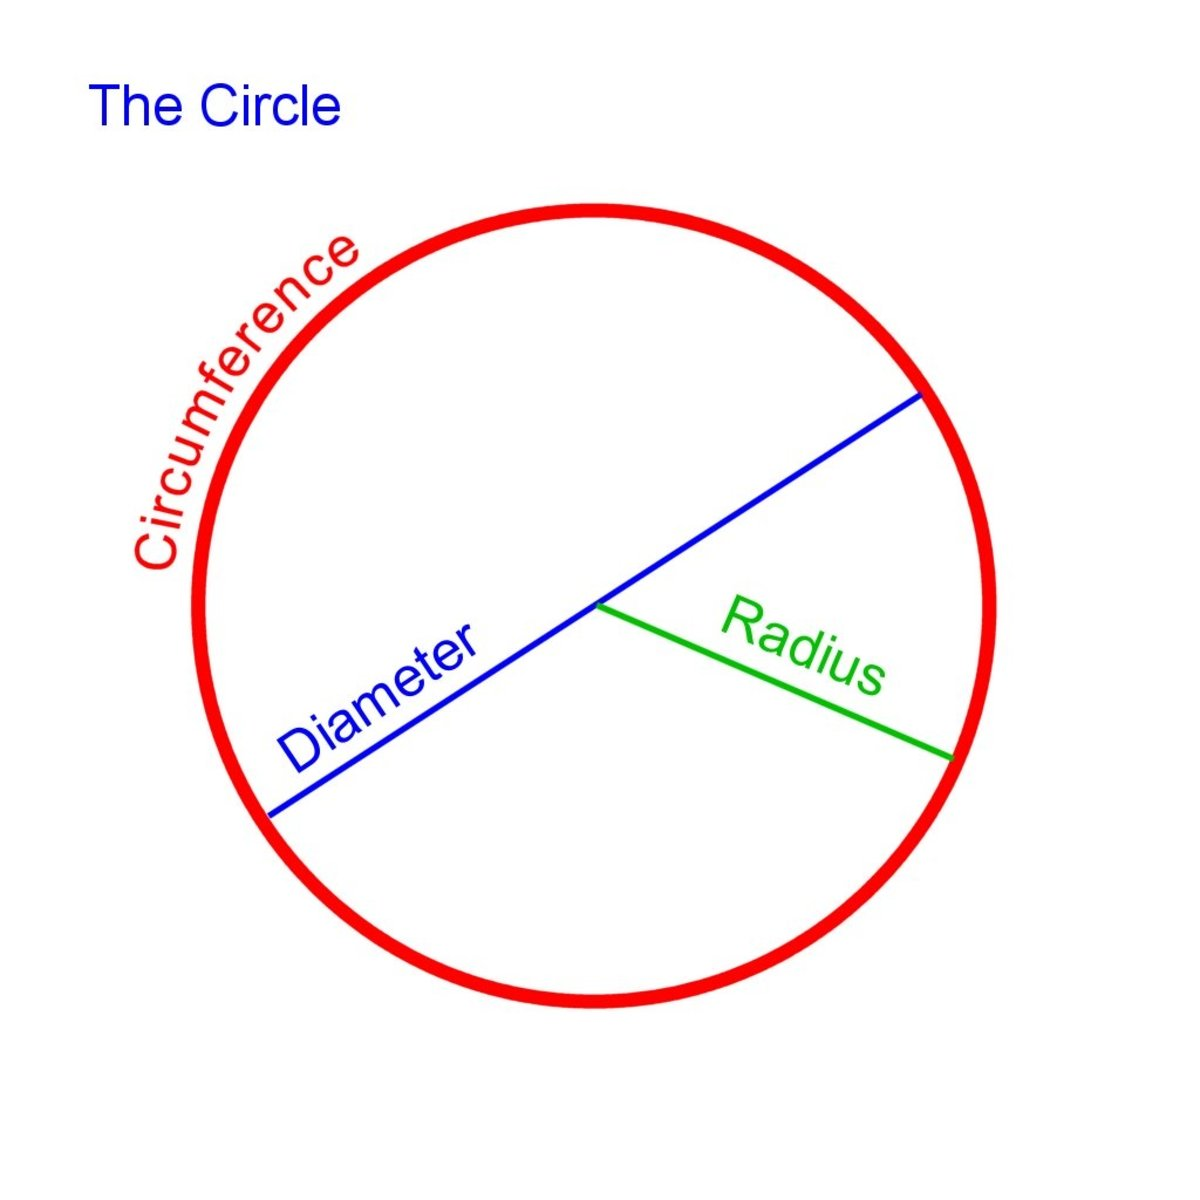 Circumference, diameter and radius